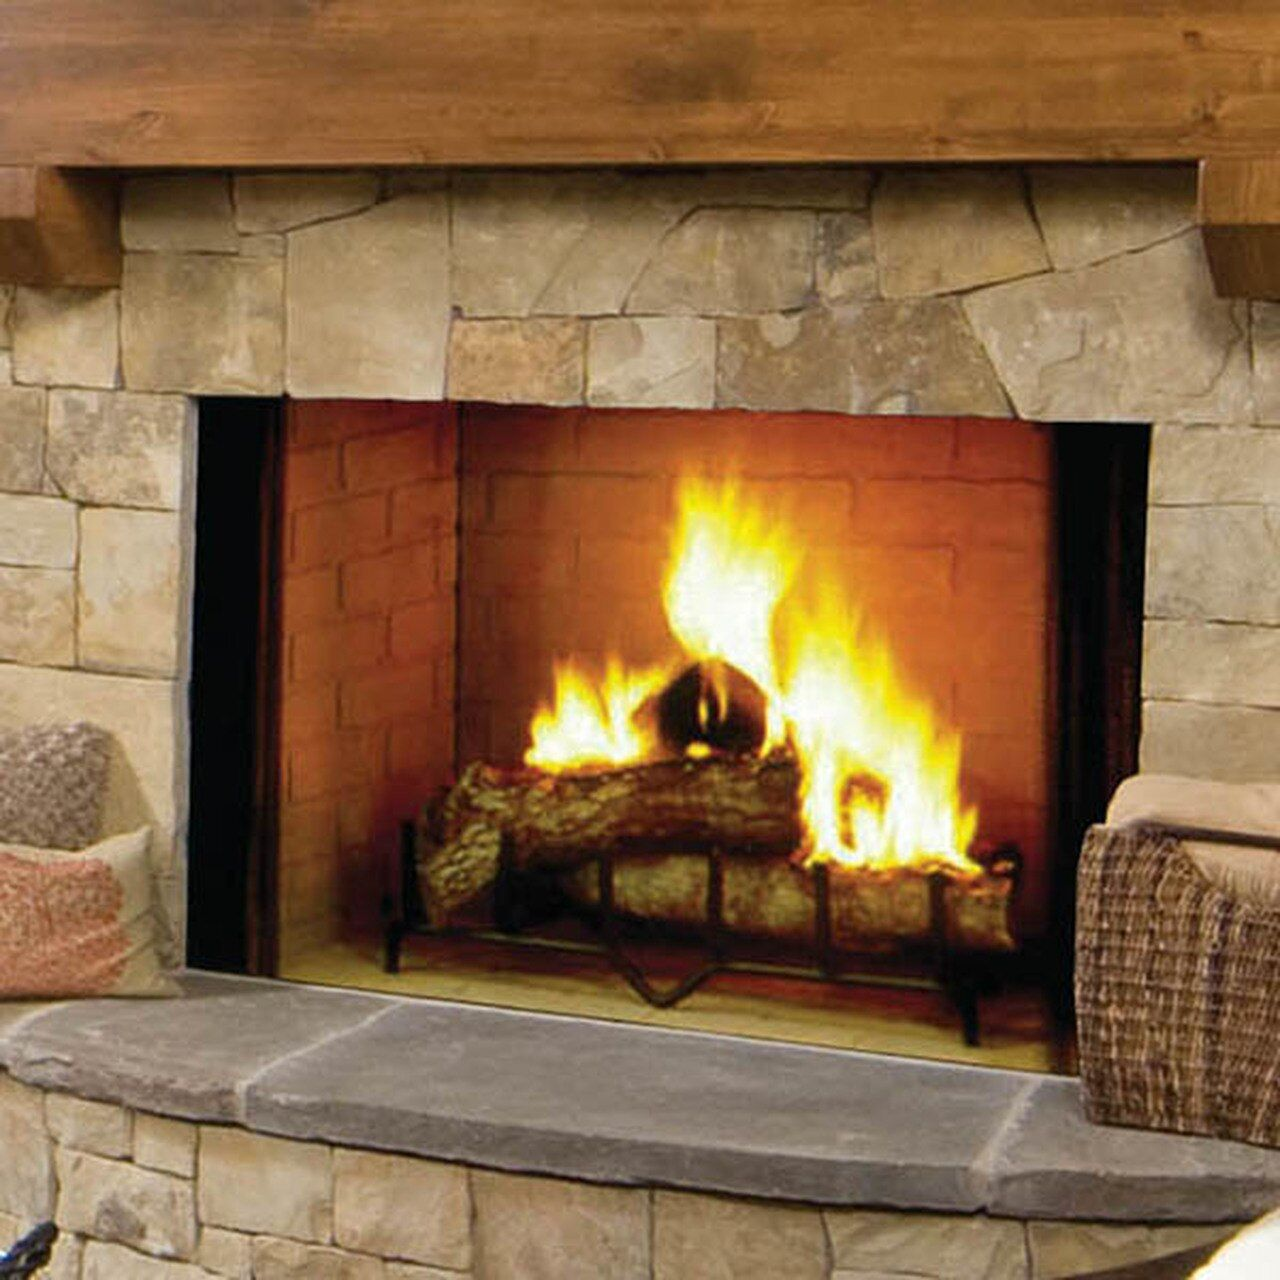 Majestic Biltmore Wood Burning Fireplaces Woodworking Plans Free Wood Pro In 2020 Woodworking Projects Furniture Woodworking Plans Patterns Woodworking Furniture Plans